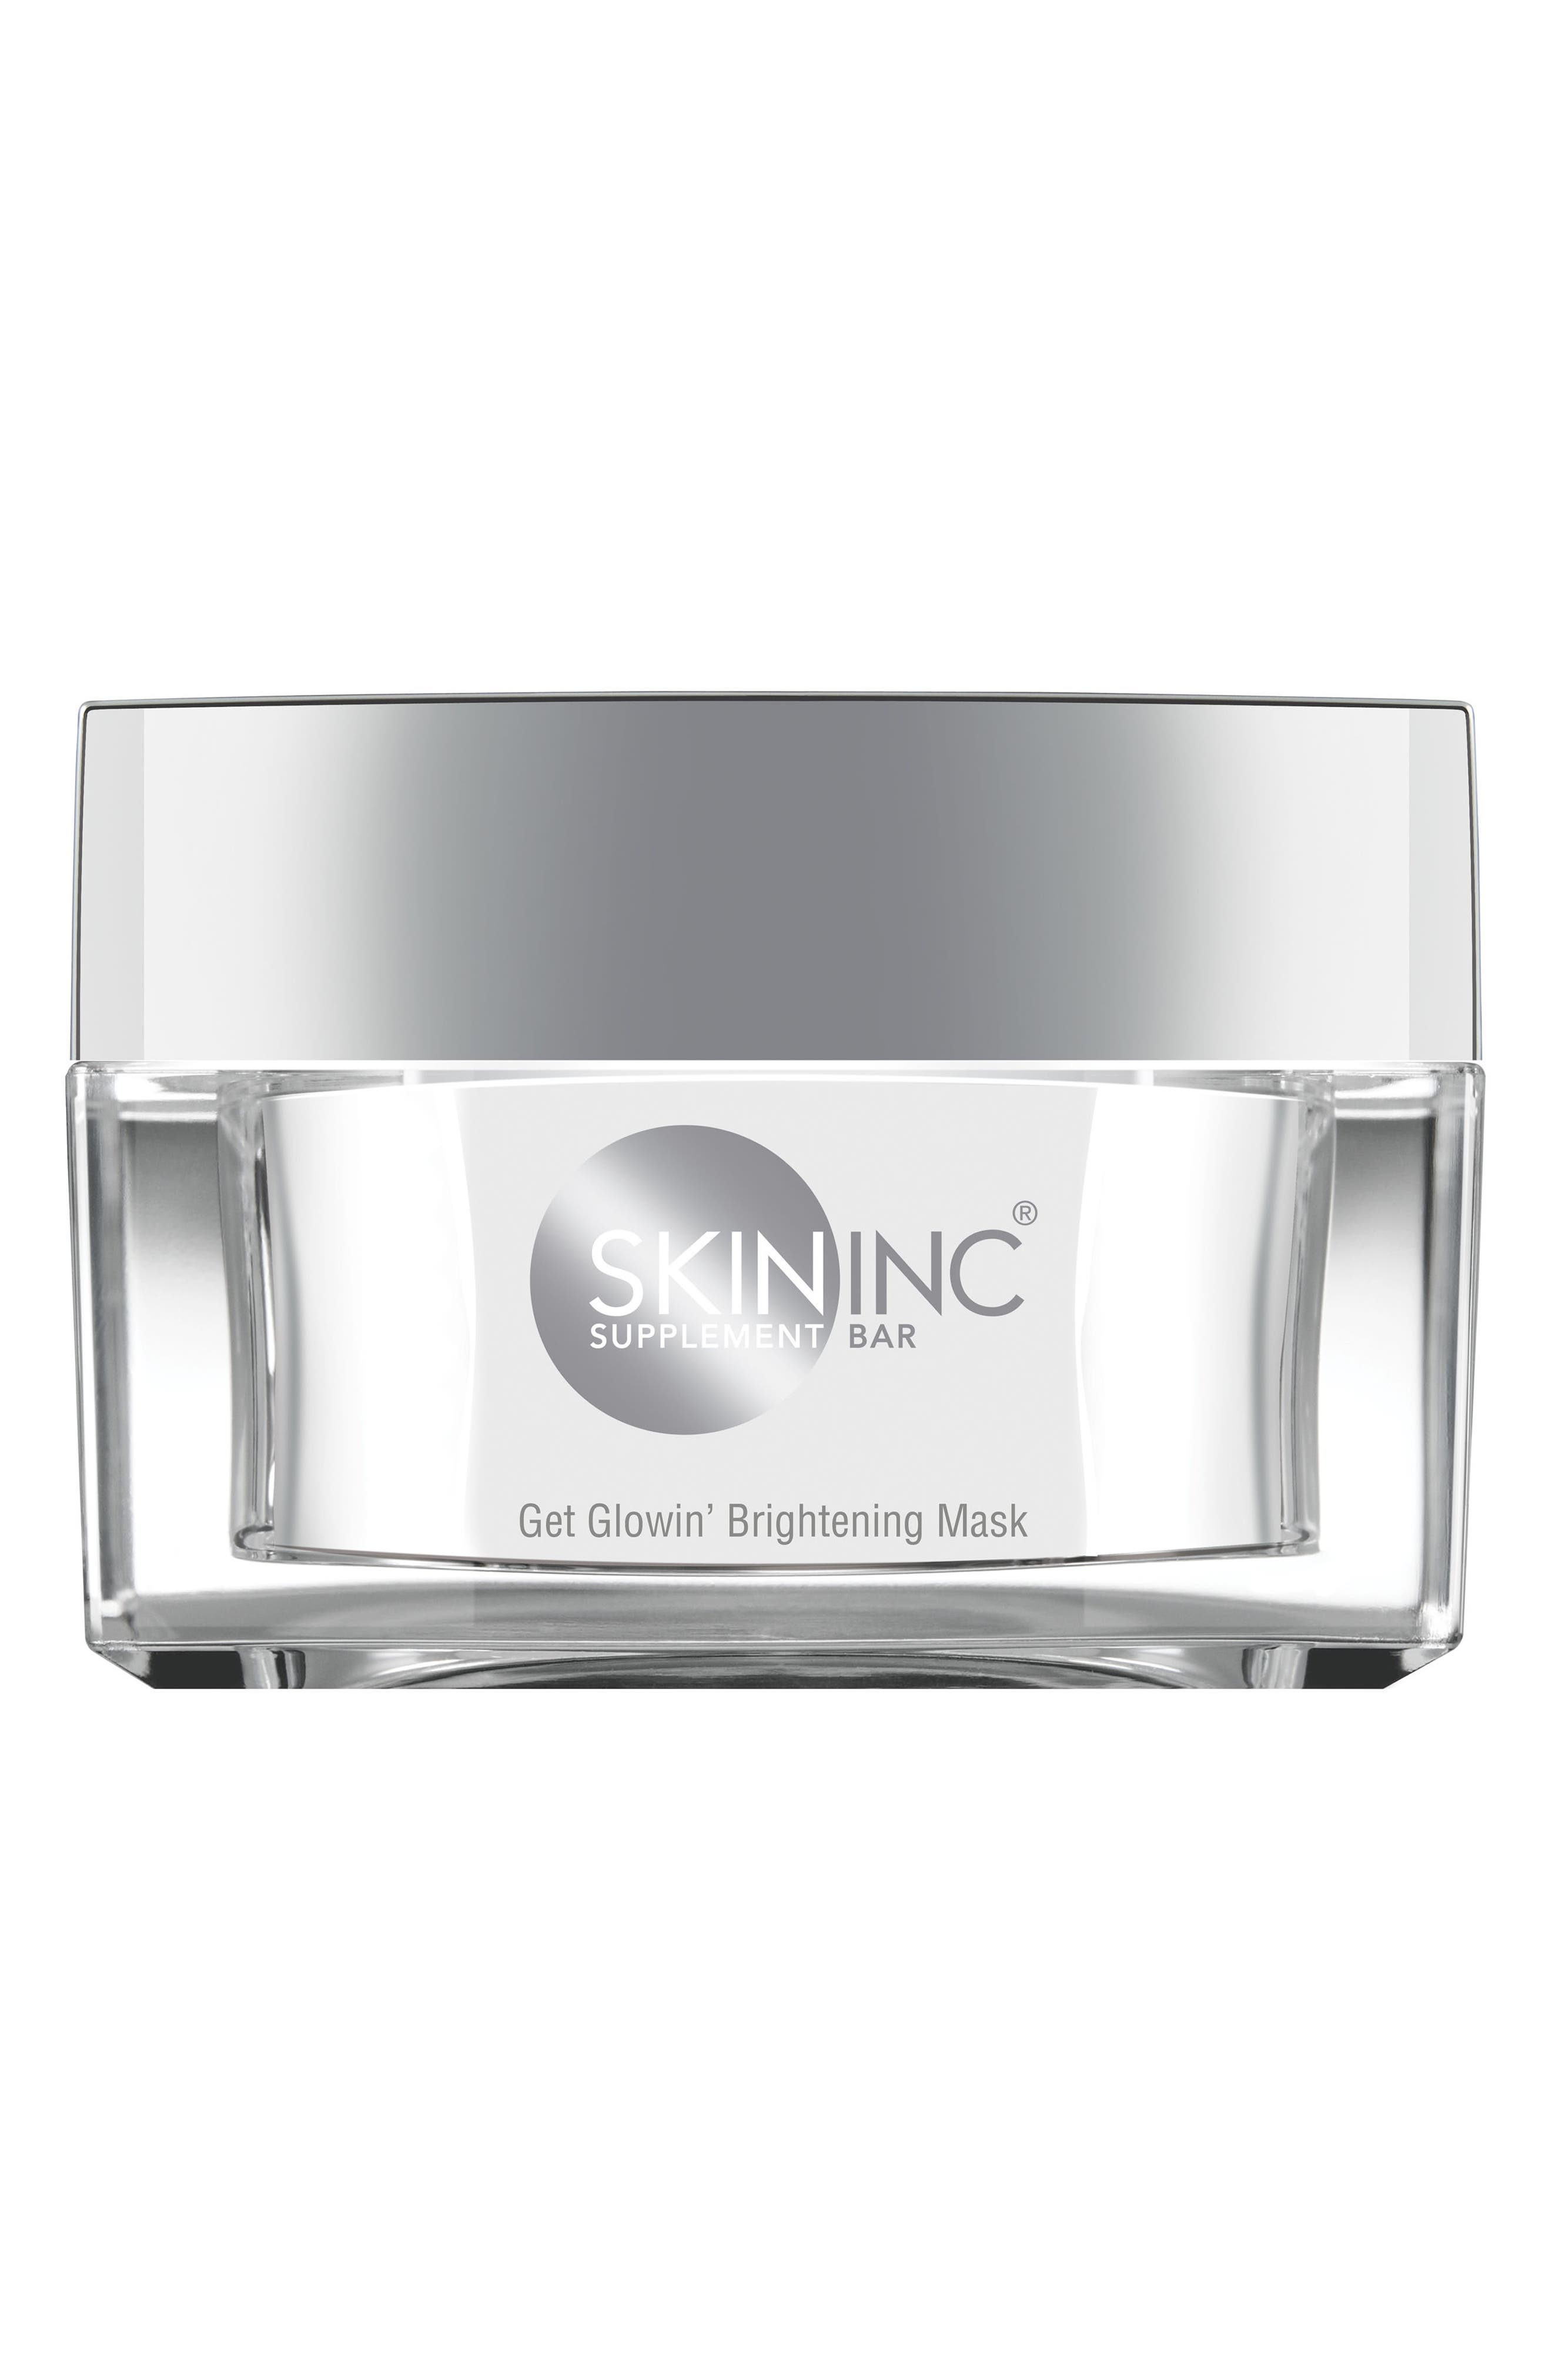 SKIN INC,                              Get Glowin' Brightening Mask,                             Main thumbnail 1, color,                             NO COLOR